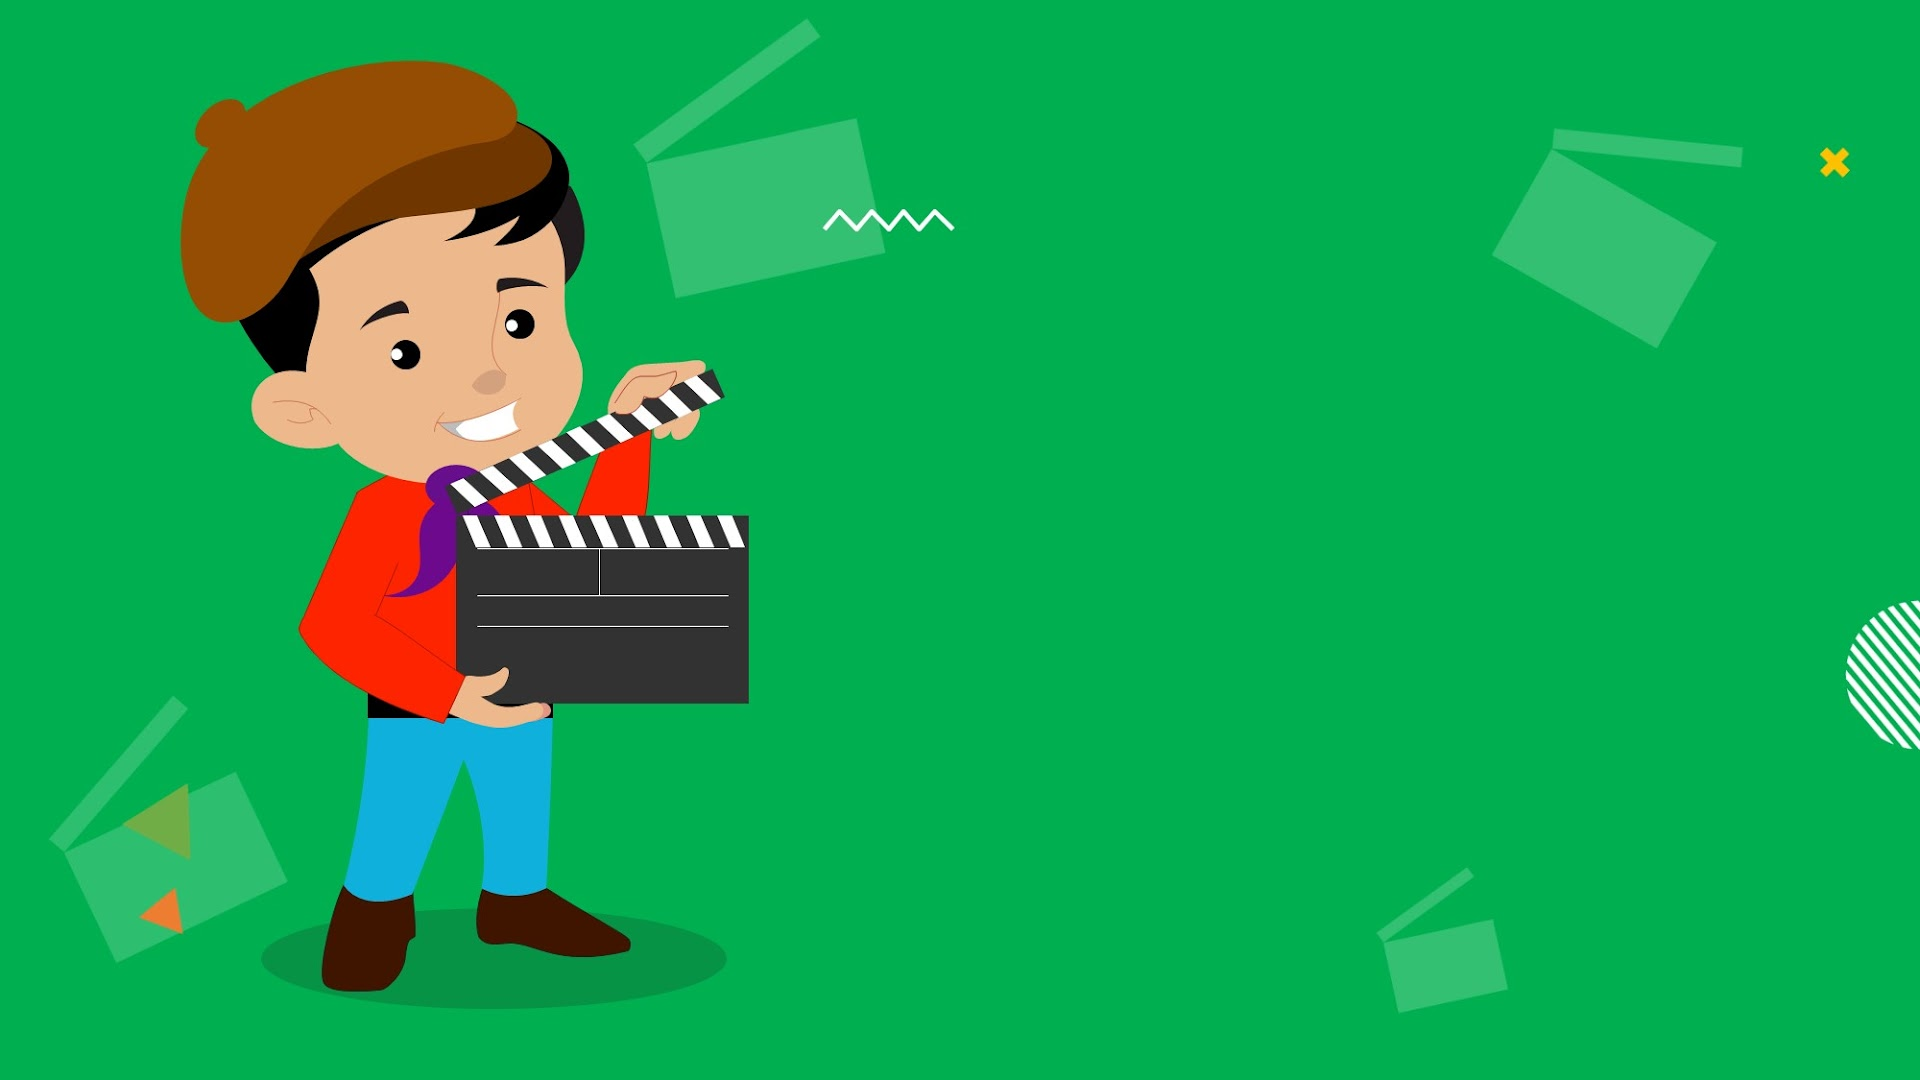 Kid Standing with movie clapperboard - free background for presentations